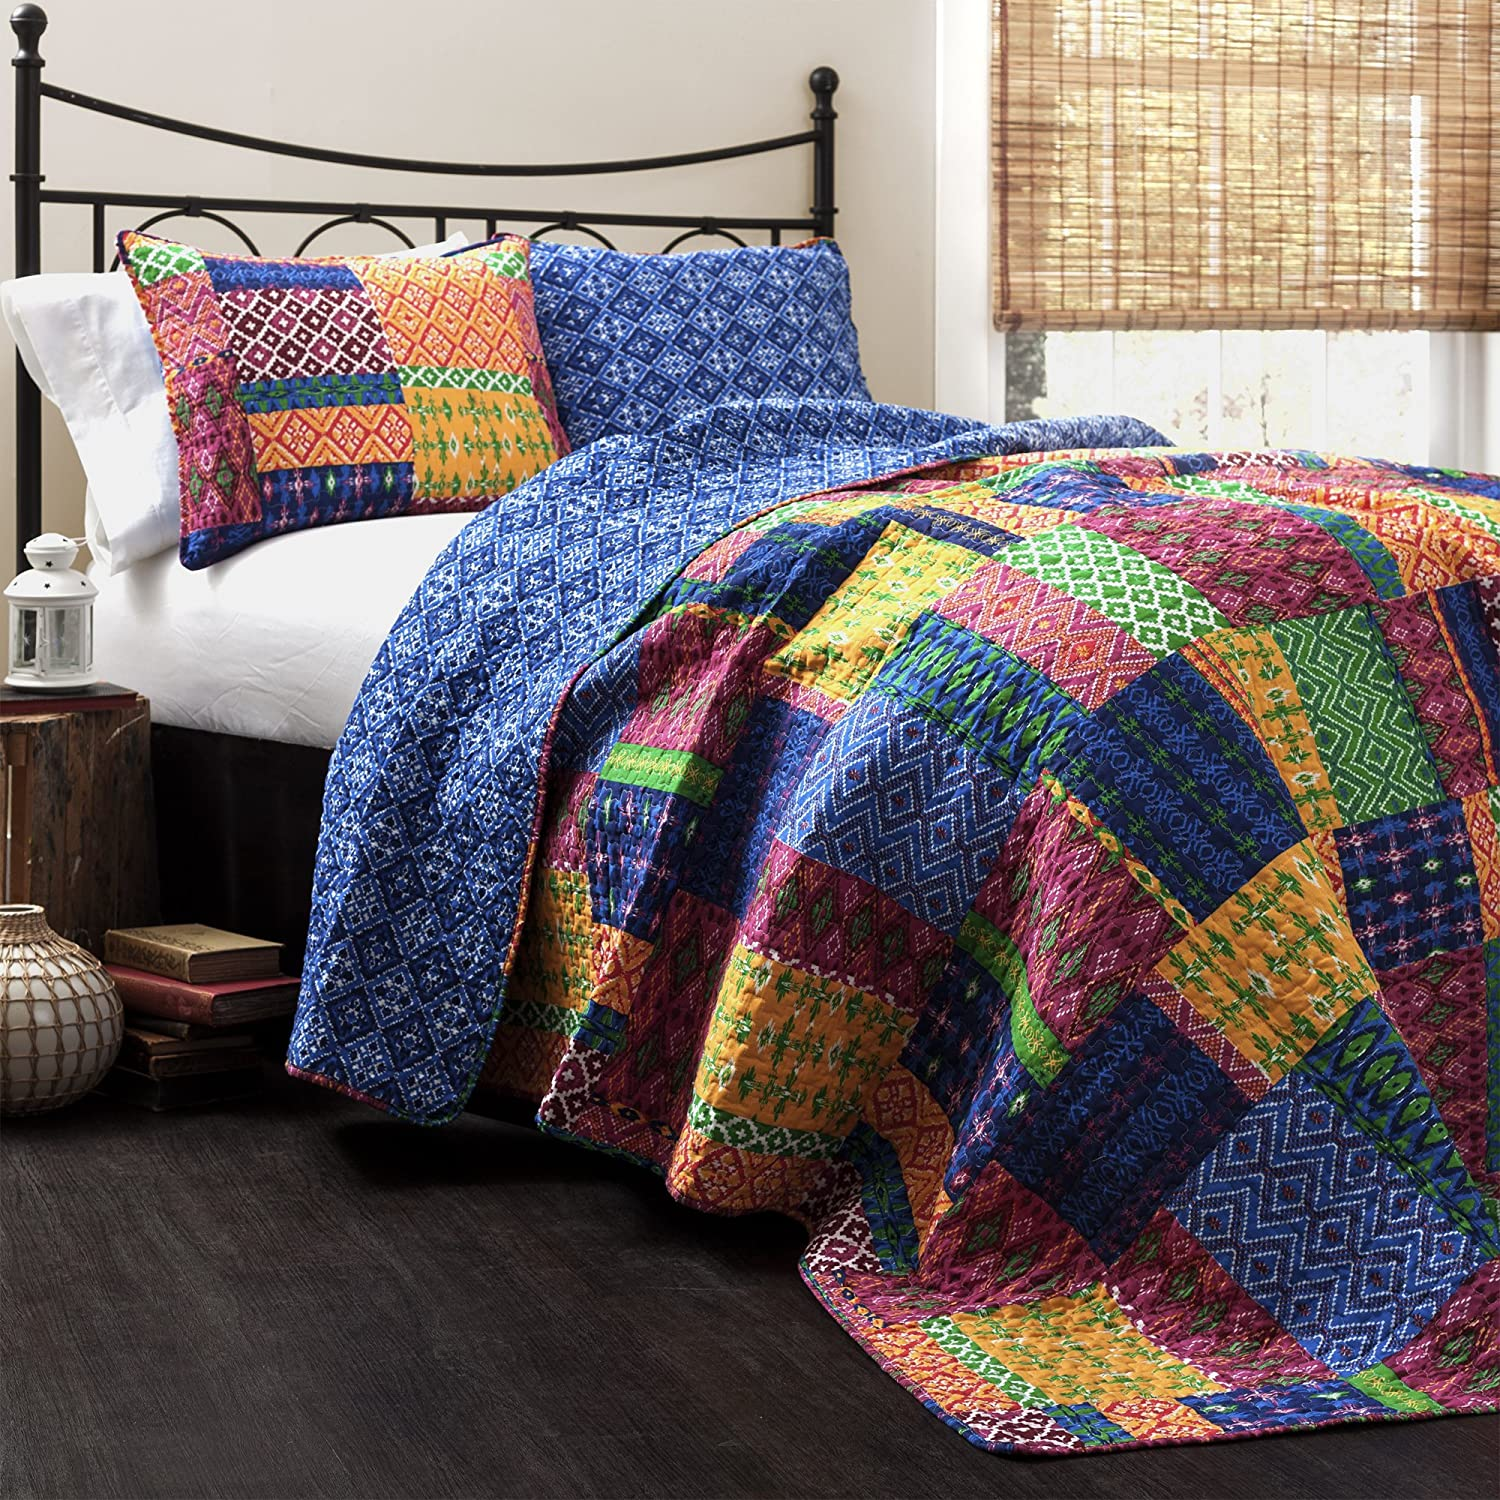 Lush Decor Misha 3-Piece Quilt Set, King, Fuchsia/Navy